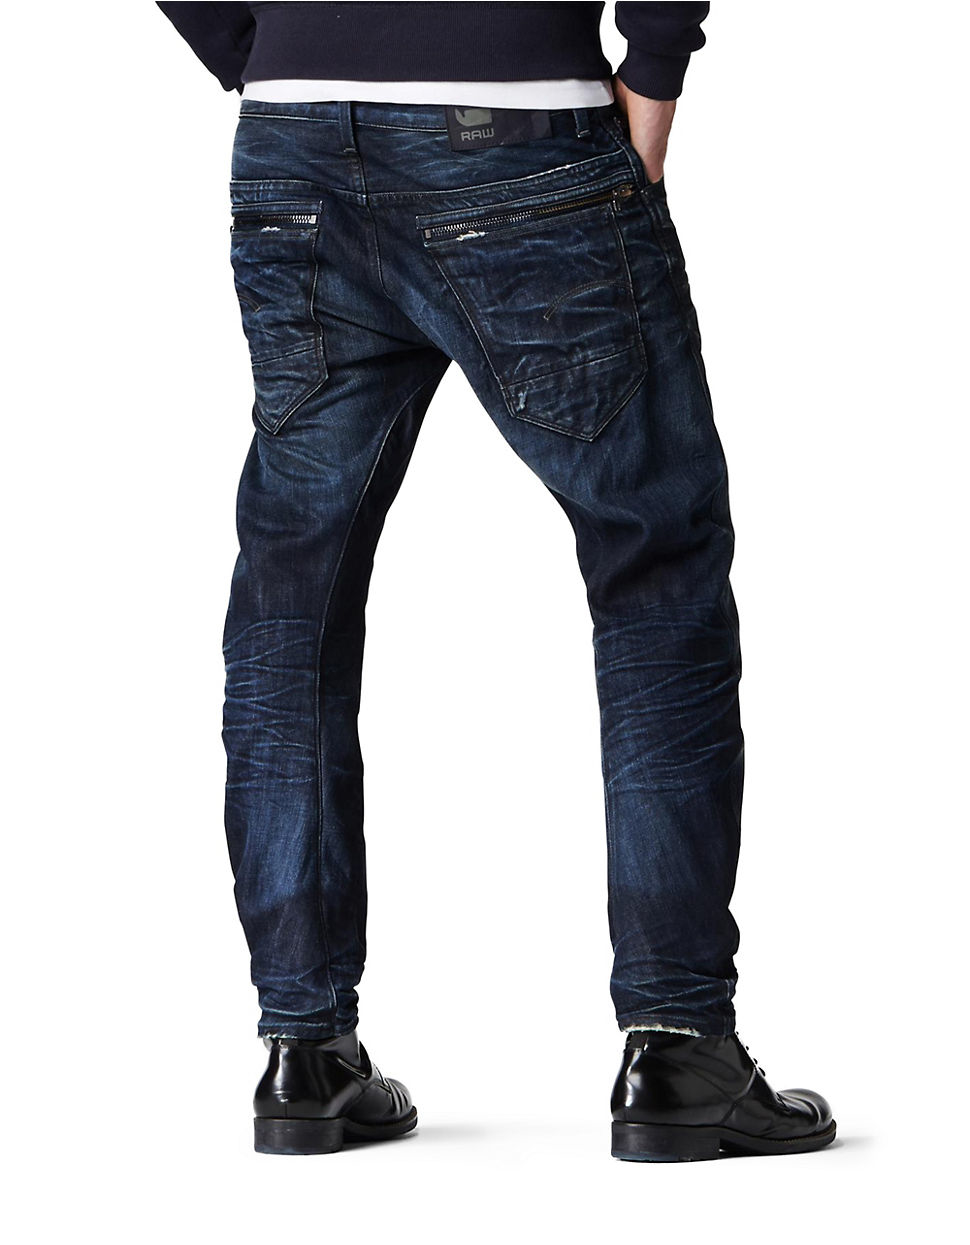 7b7d915d0a8 G-Star RAW Arc Zip 3d Slim Blue-black Wash Jeans in Blue for Men - Lyst